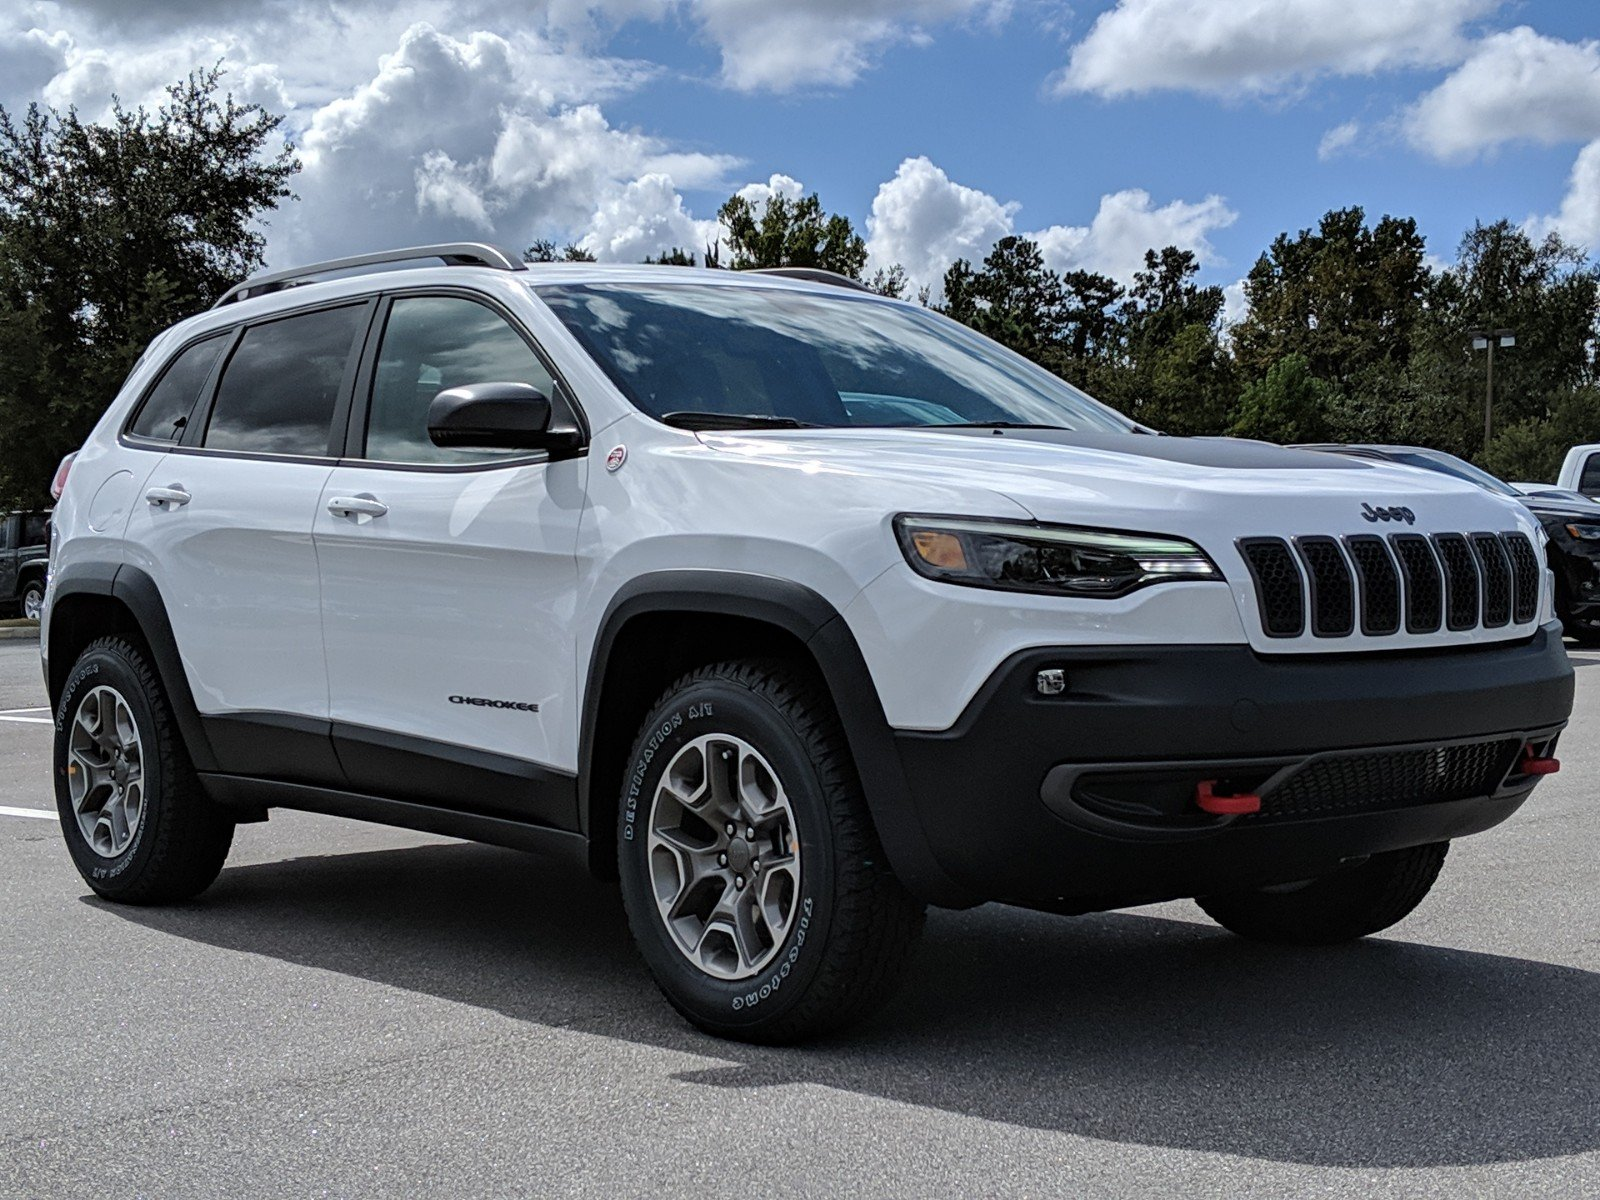 New Jeep Cherokee >> New 2020 Jeep Cherokee Trailhawk 4x4